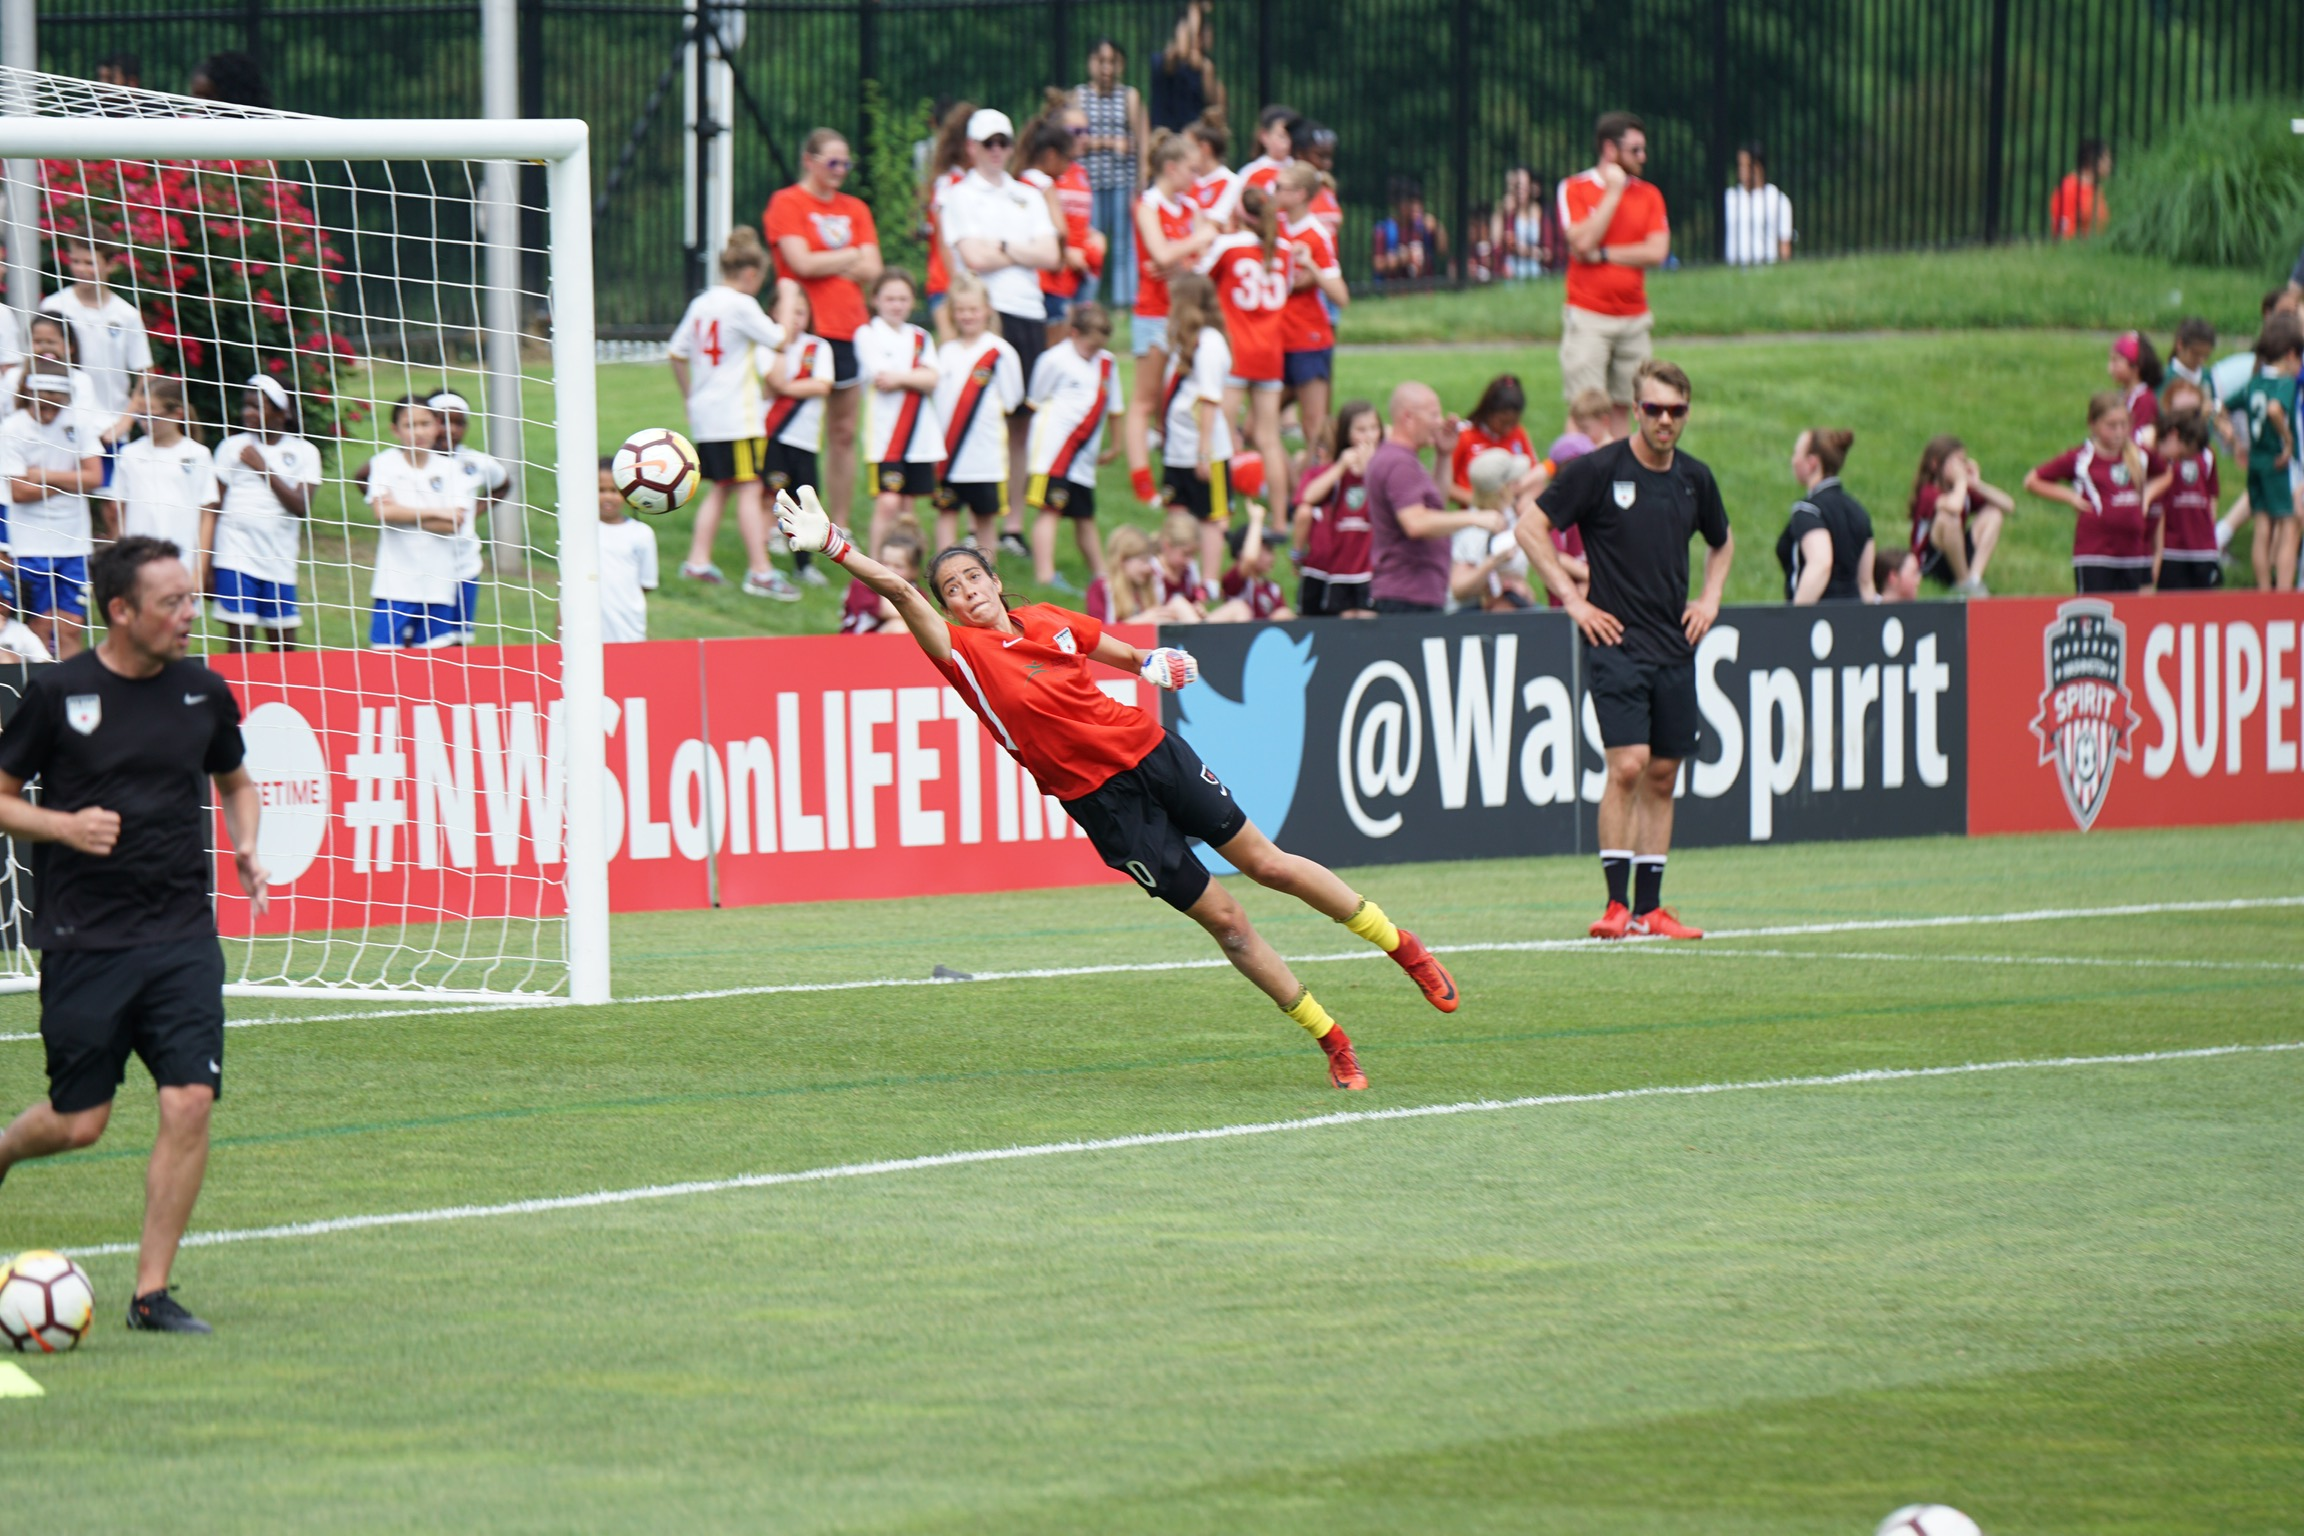 A soccer player elevated at a 45 degree angle from the ground, reaching for a soccer ball in front of the net and a crowd of onlookers on the sidelines.